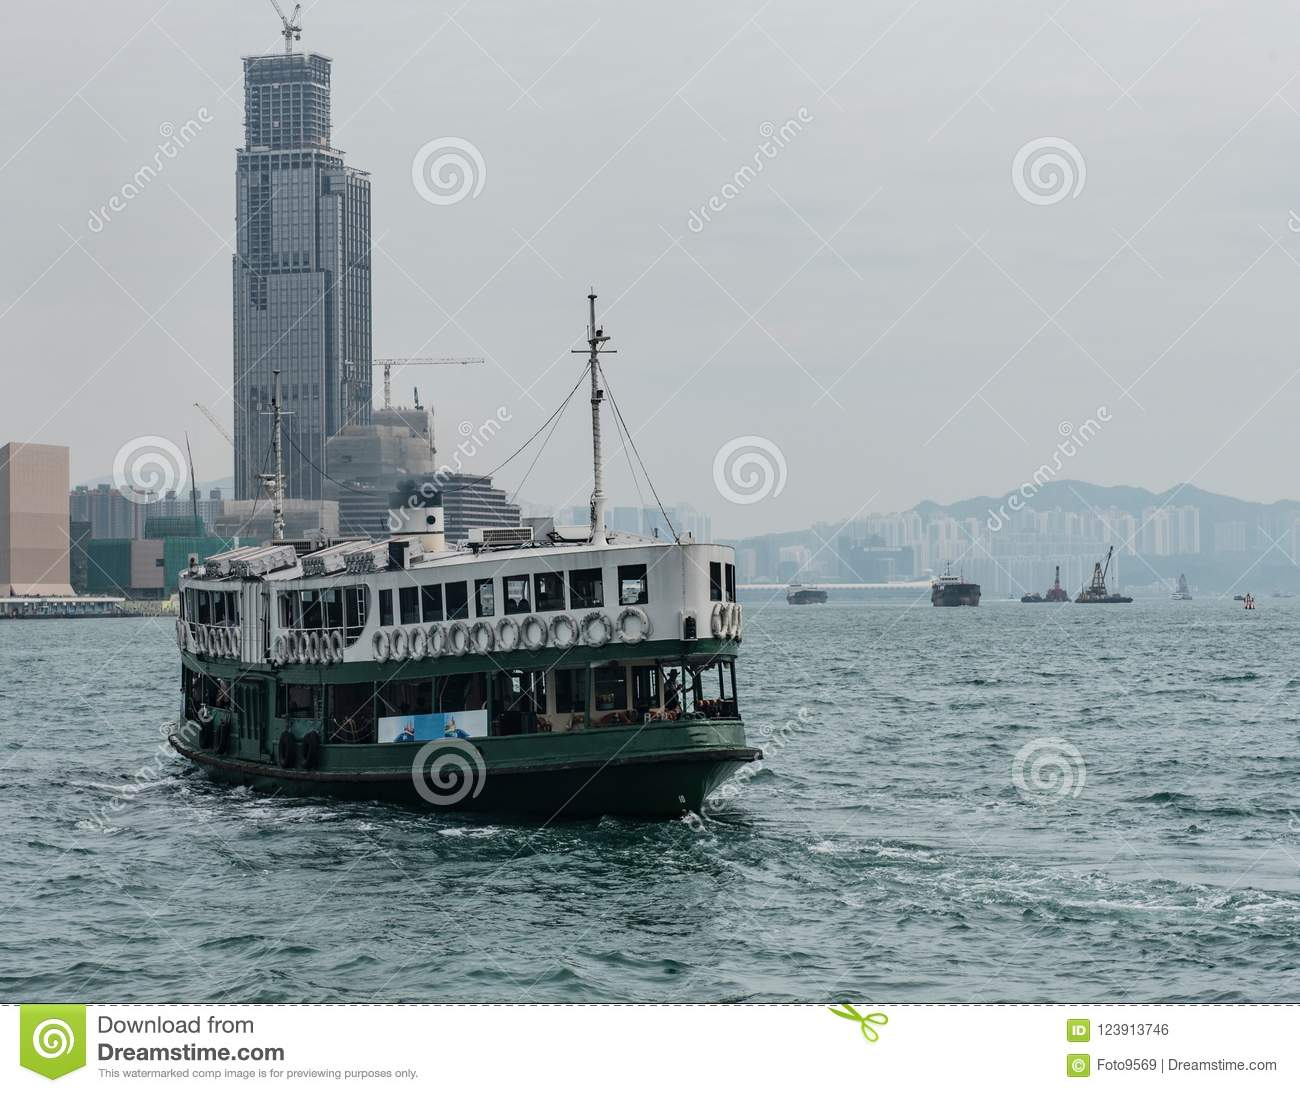 Star a doca do ferryboat no cais de Victoria Harbor